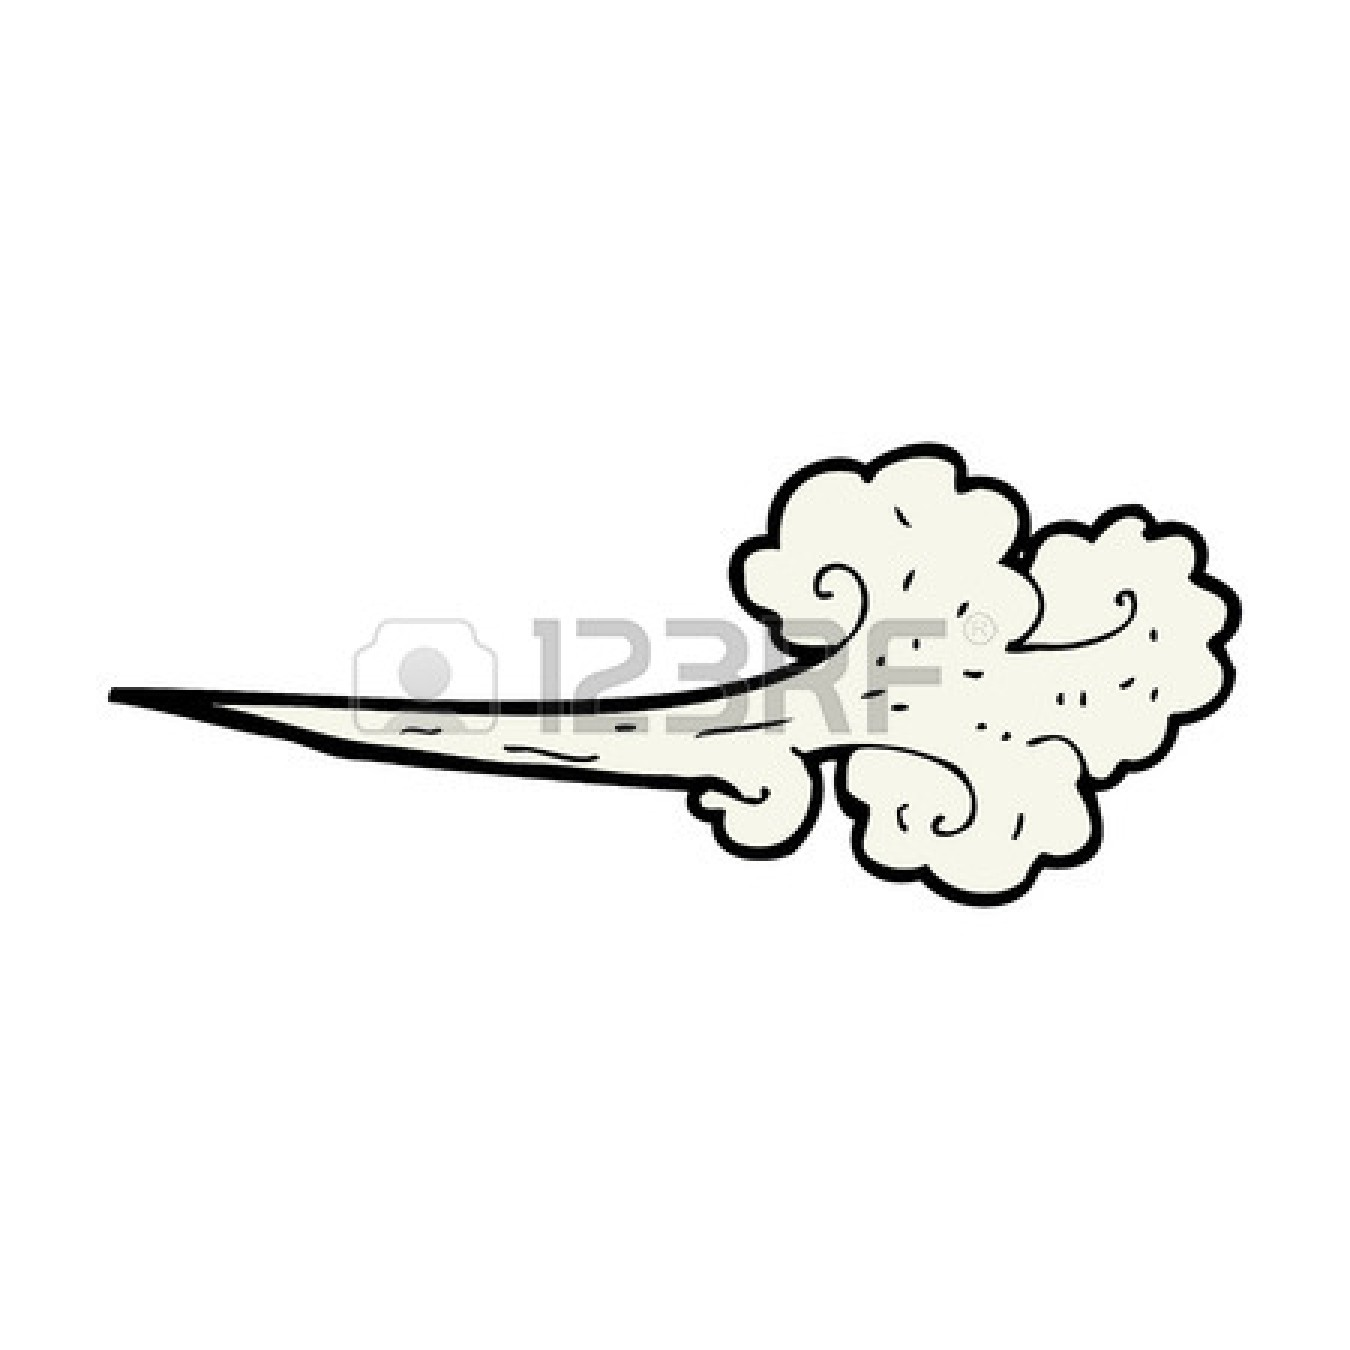 Similiar Gust Of Wind Clip Art Keywords